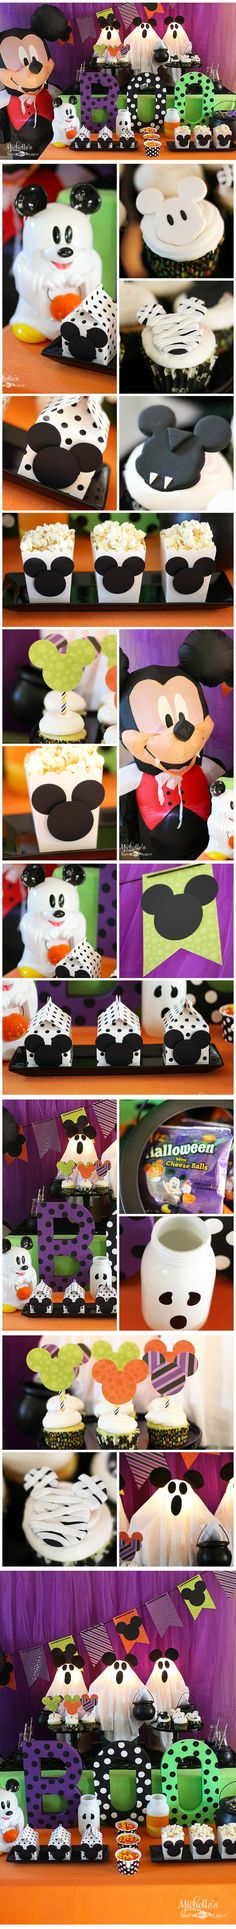 Love Mickey and Halloween? Why not celebrate Halloween Week with a Mickey Halloween Party! I really appreciate the ghosts wearing Mickey Mouse ears! Easy way to decorate? Cover with Halloween paper and add black Mickey icons and you have a Mickey-inspired decor! Mickey & Friends Halloween Party decorations & ideas.